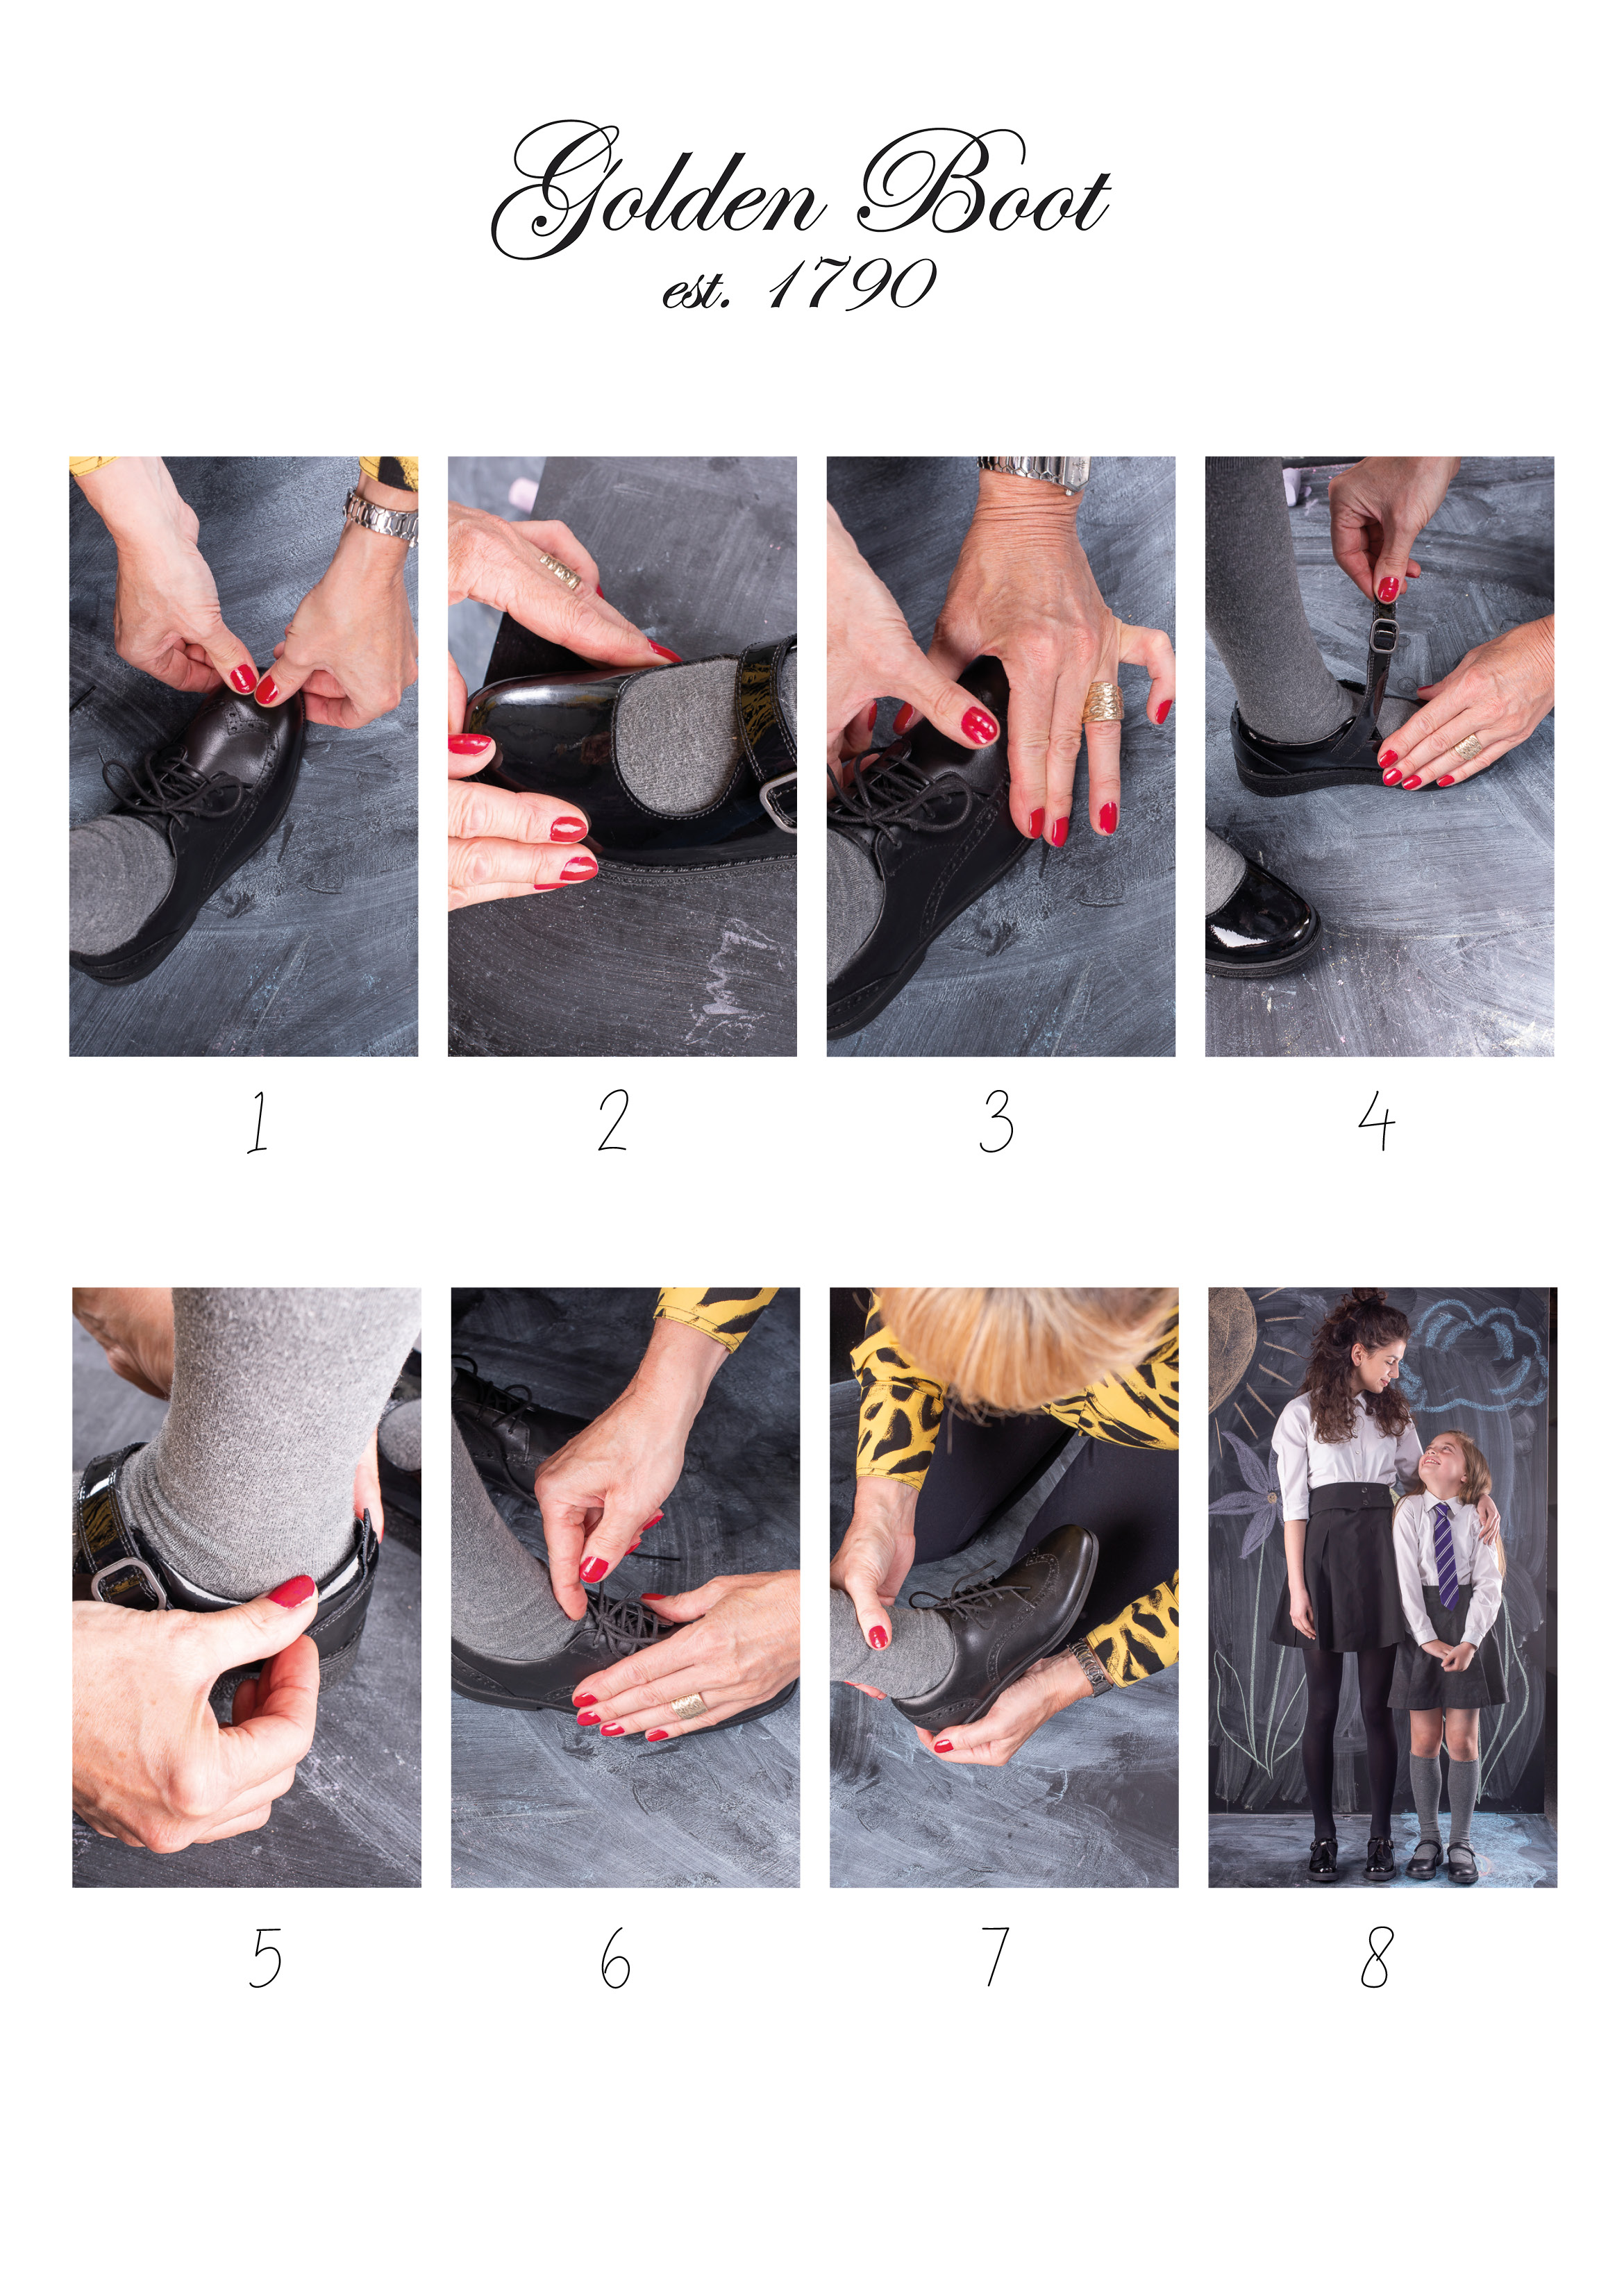 Our guide to fitting shoes at home